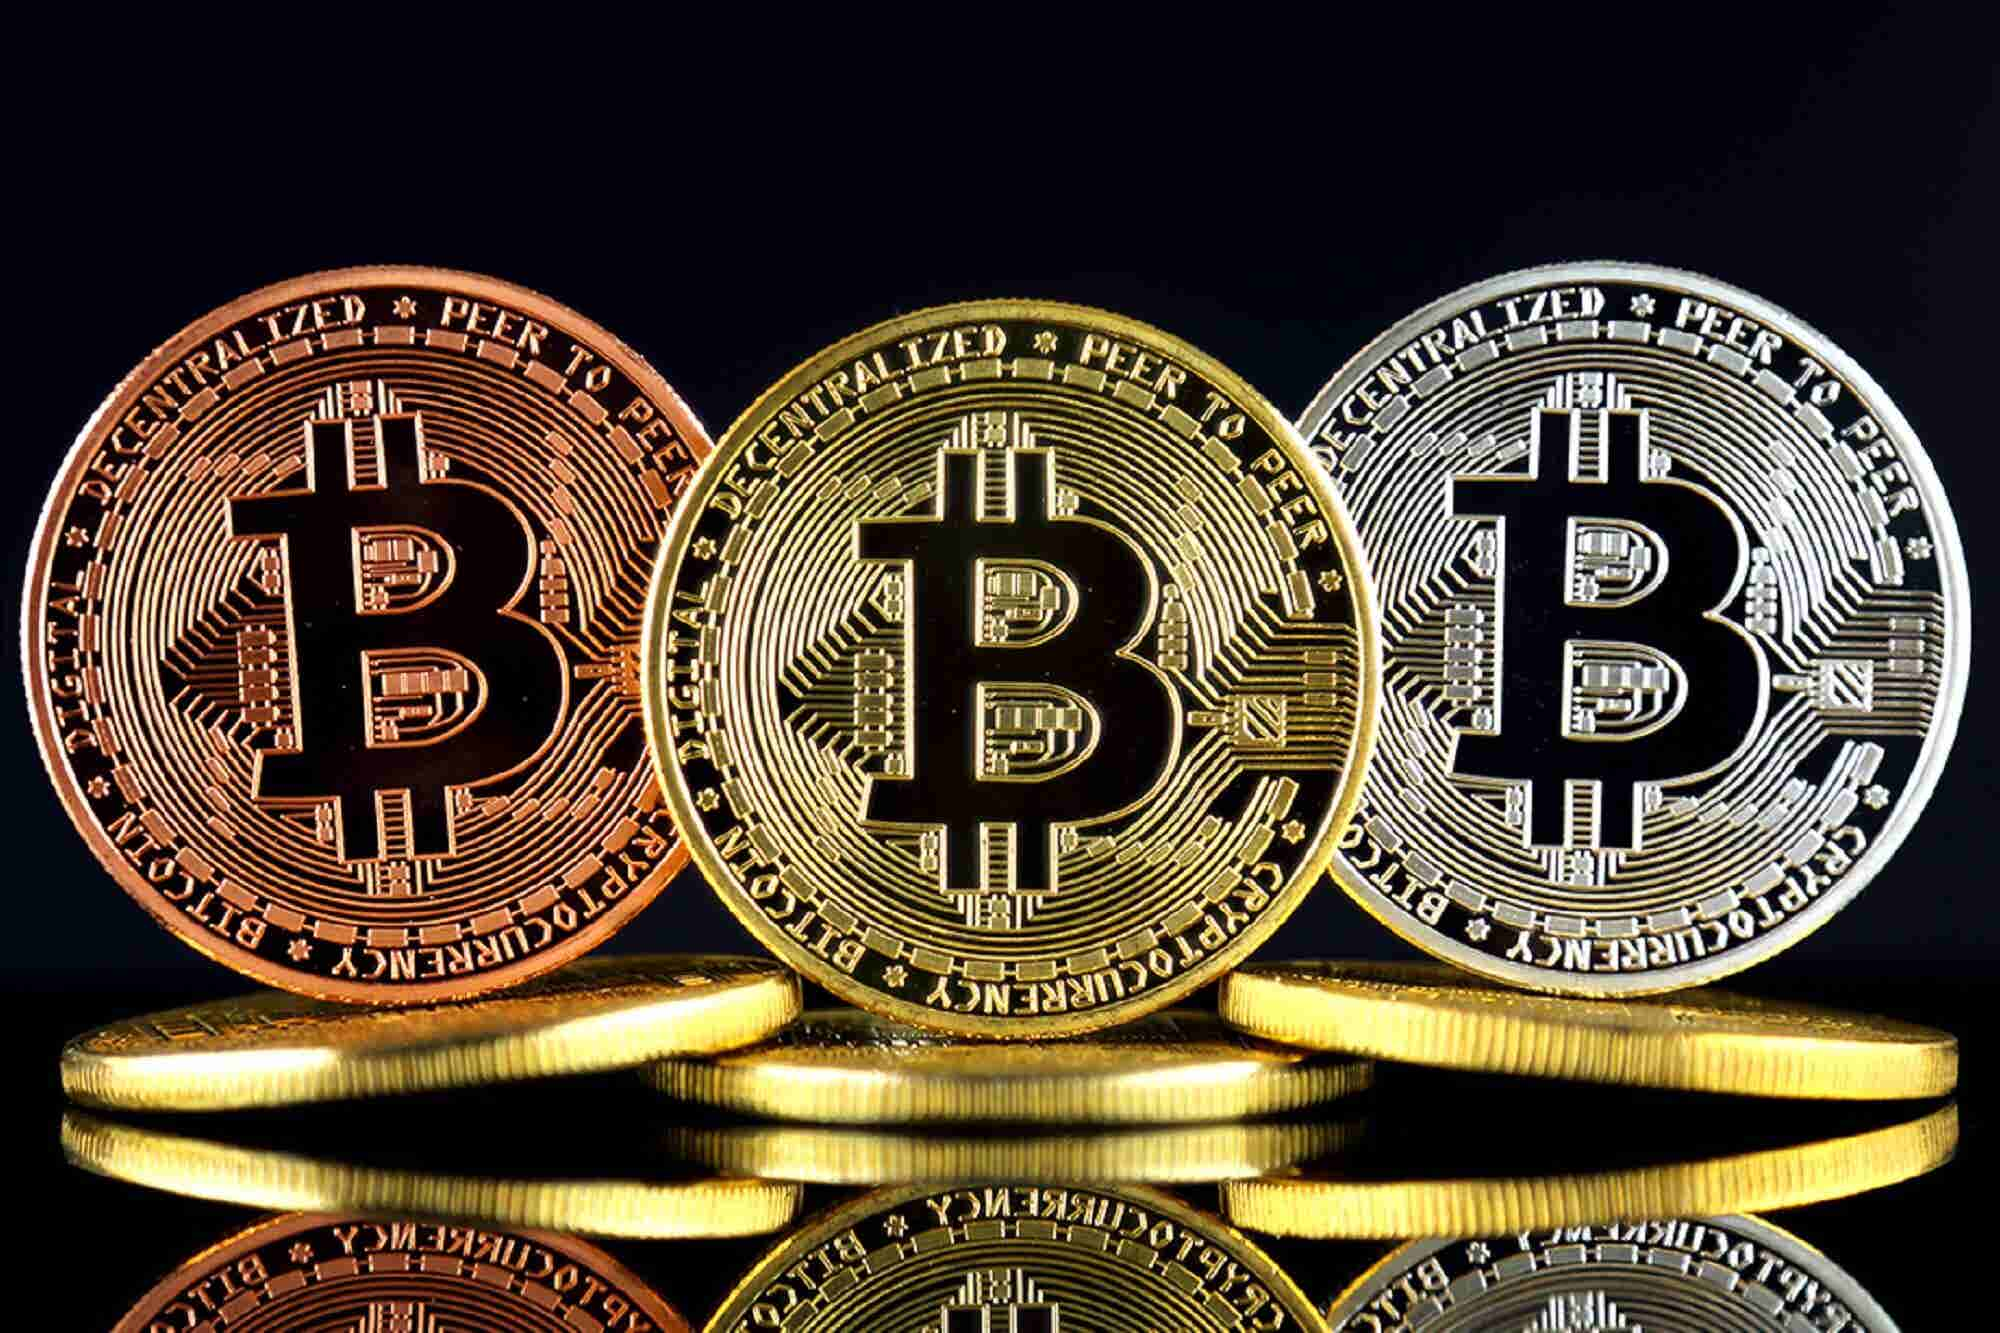 #InvestmentSpecial: Digital Currency Might be Illegal in India but You Can Still Invest in it. Here's How